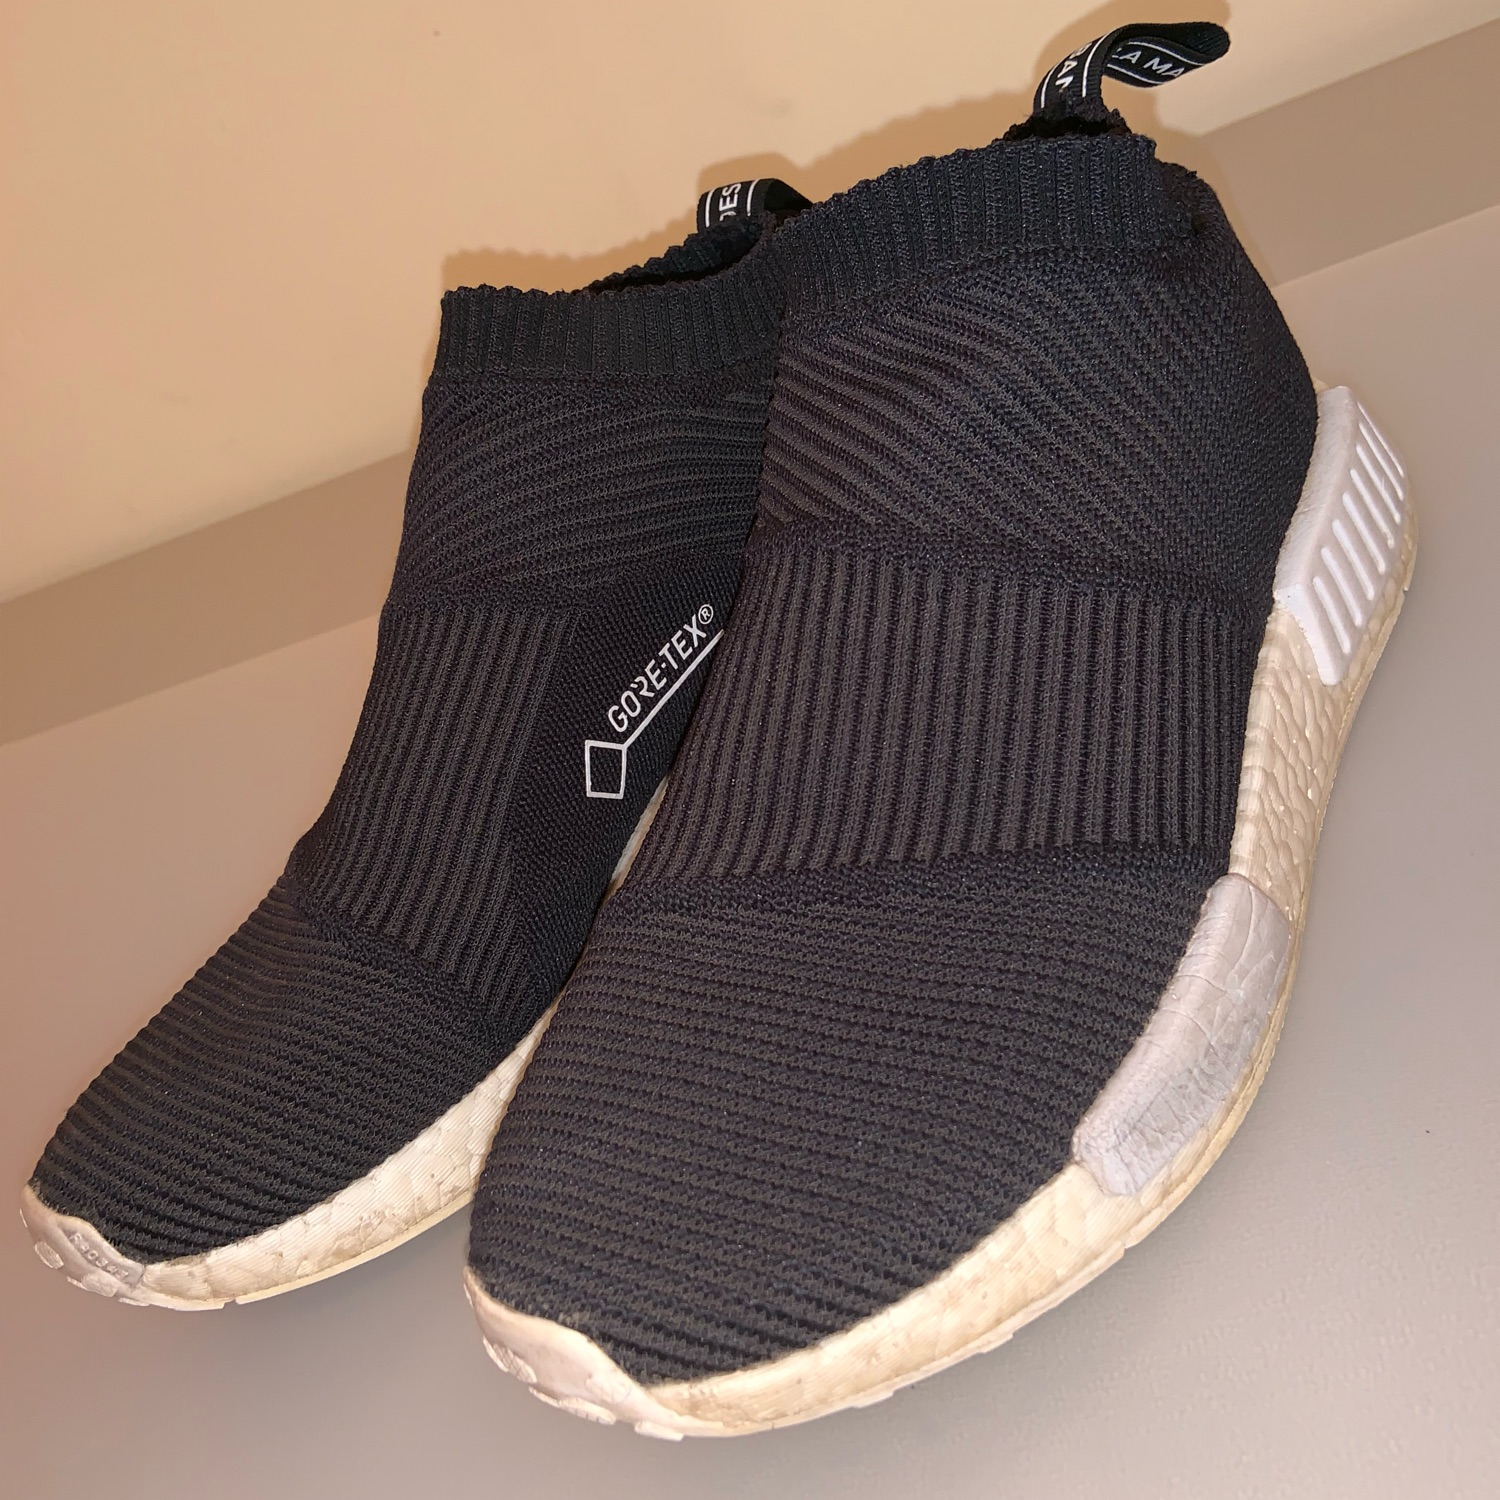 check-out 9915d b536d Adidas Nmd Gore-Tex City Sock